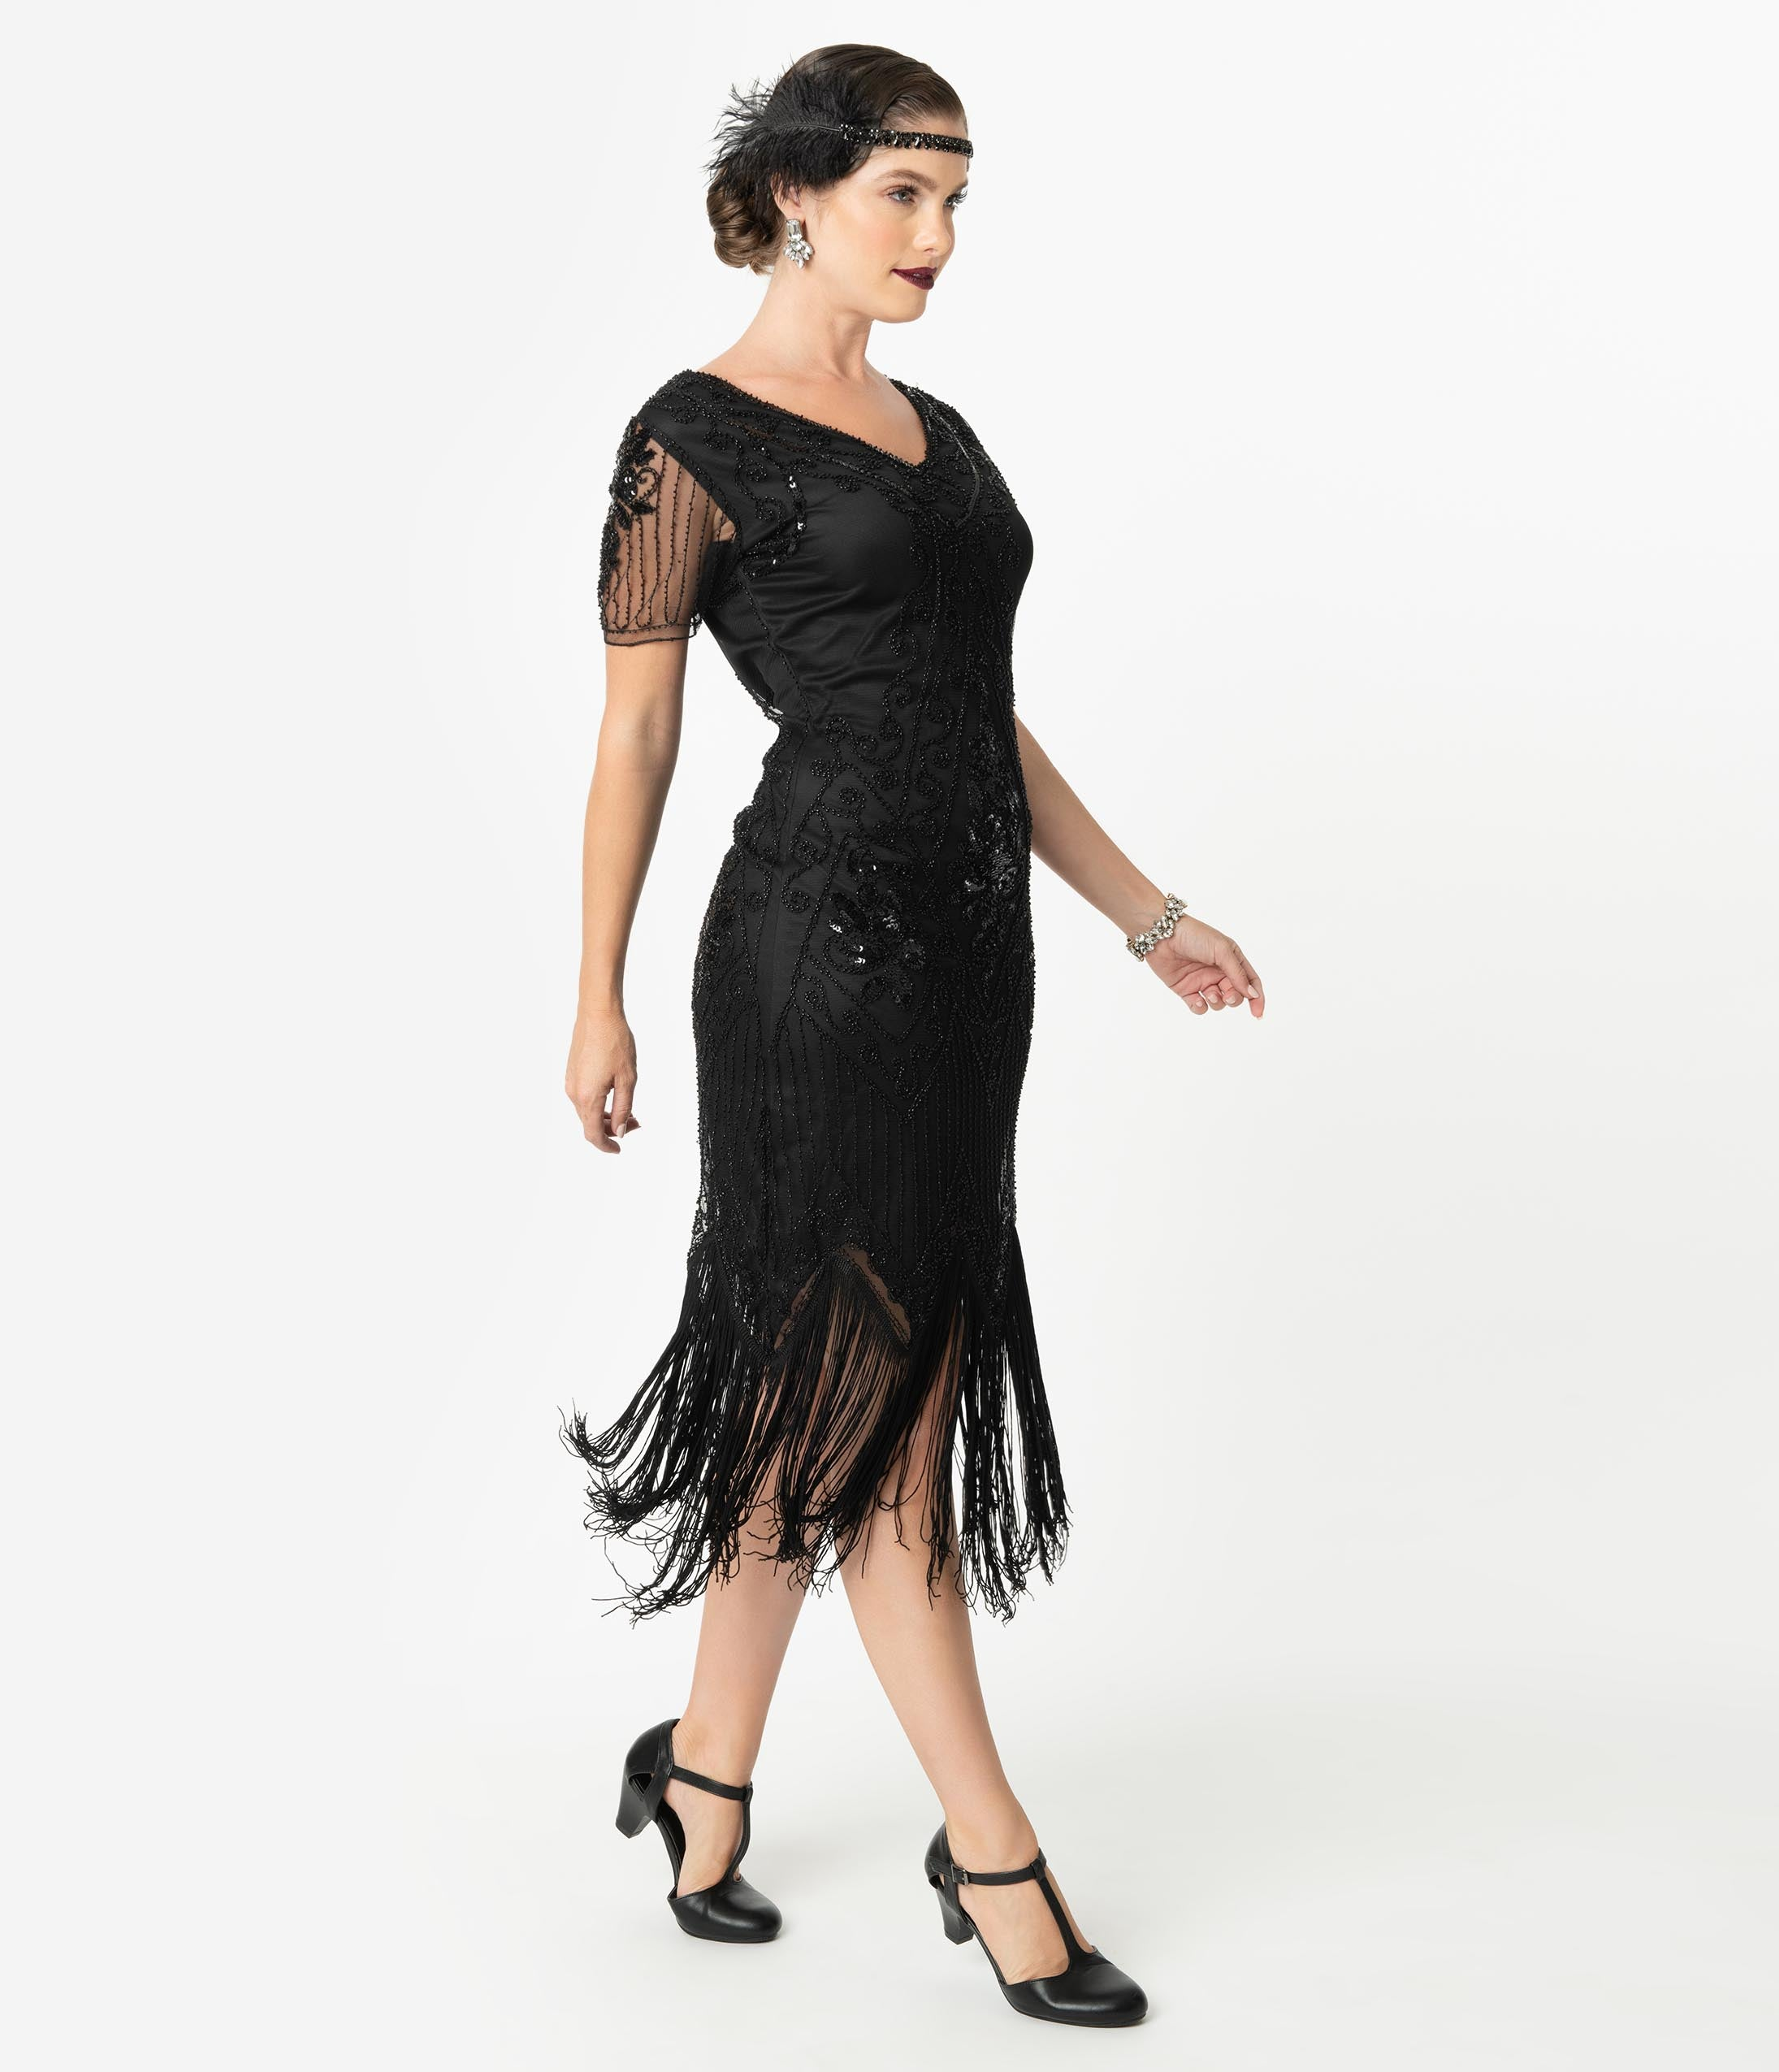 1920s Costumes: Flapper, Great Gatsby, Gangster Girl Unique Vintage Black Beaded Short Sleeve Fringe Valentine Cocktail Flapper Dress $98.00 AT vintagedancer.com